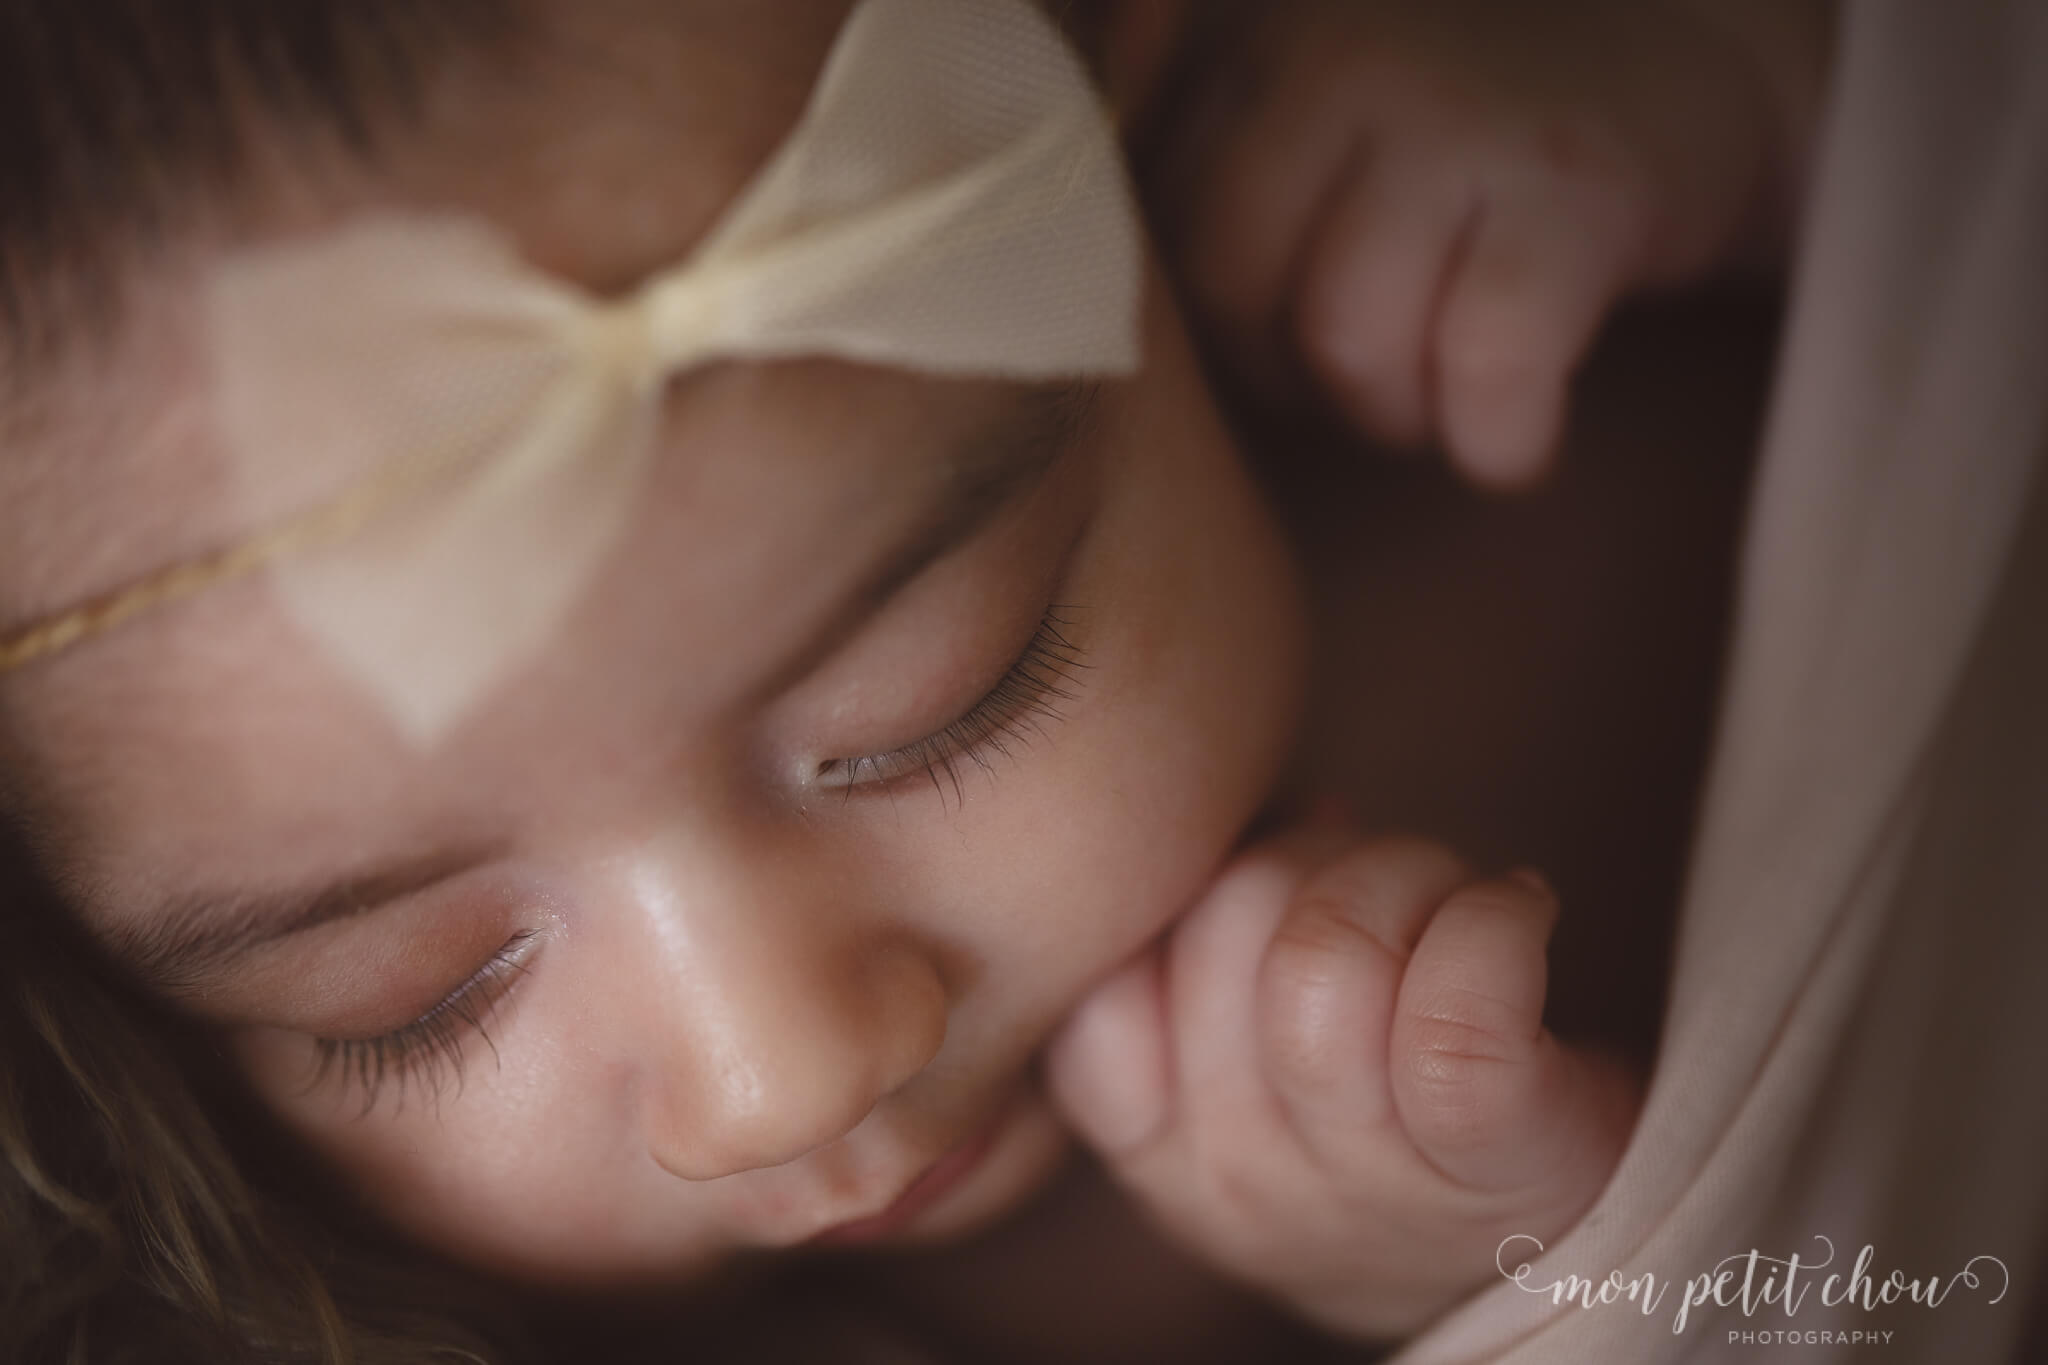 Macro photo of a newborn with gorgeous lashes in focus.